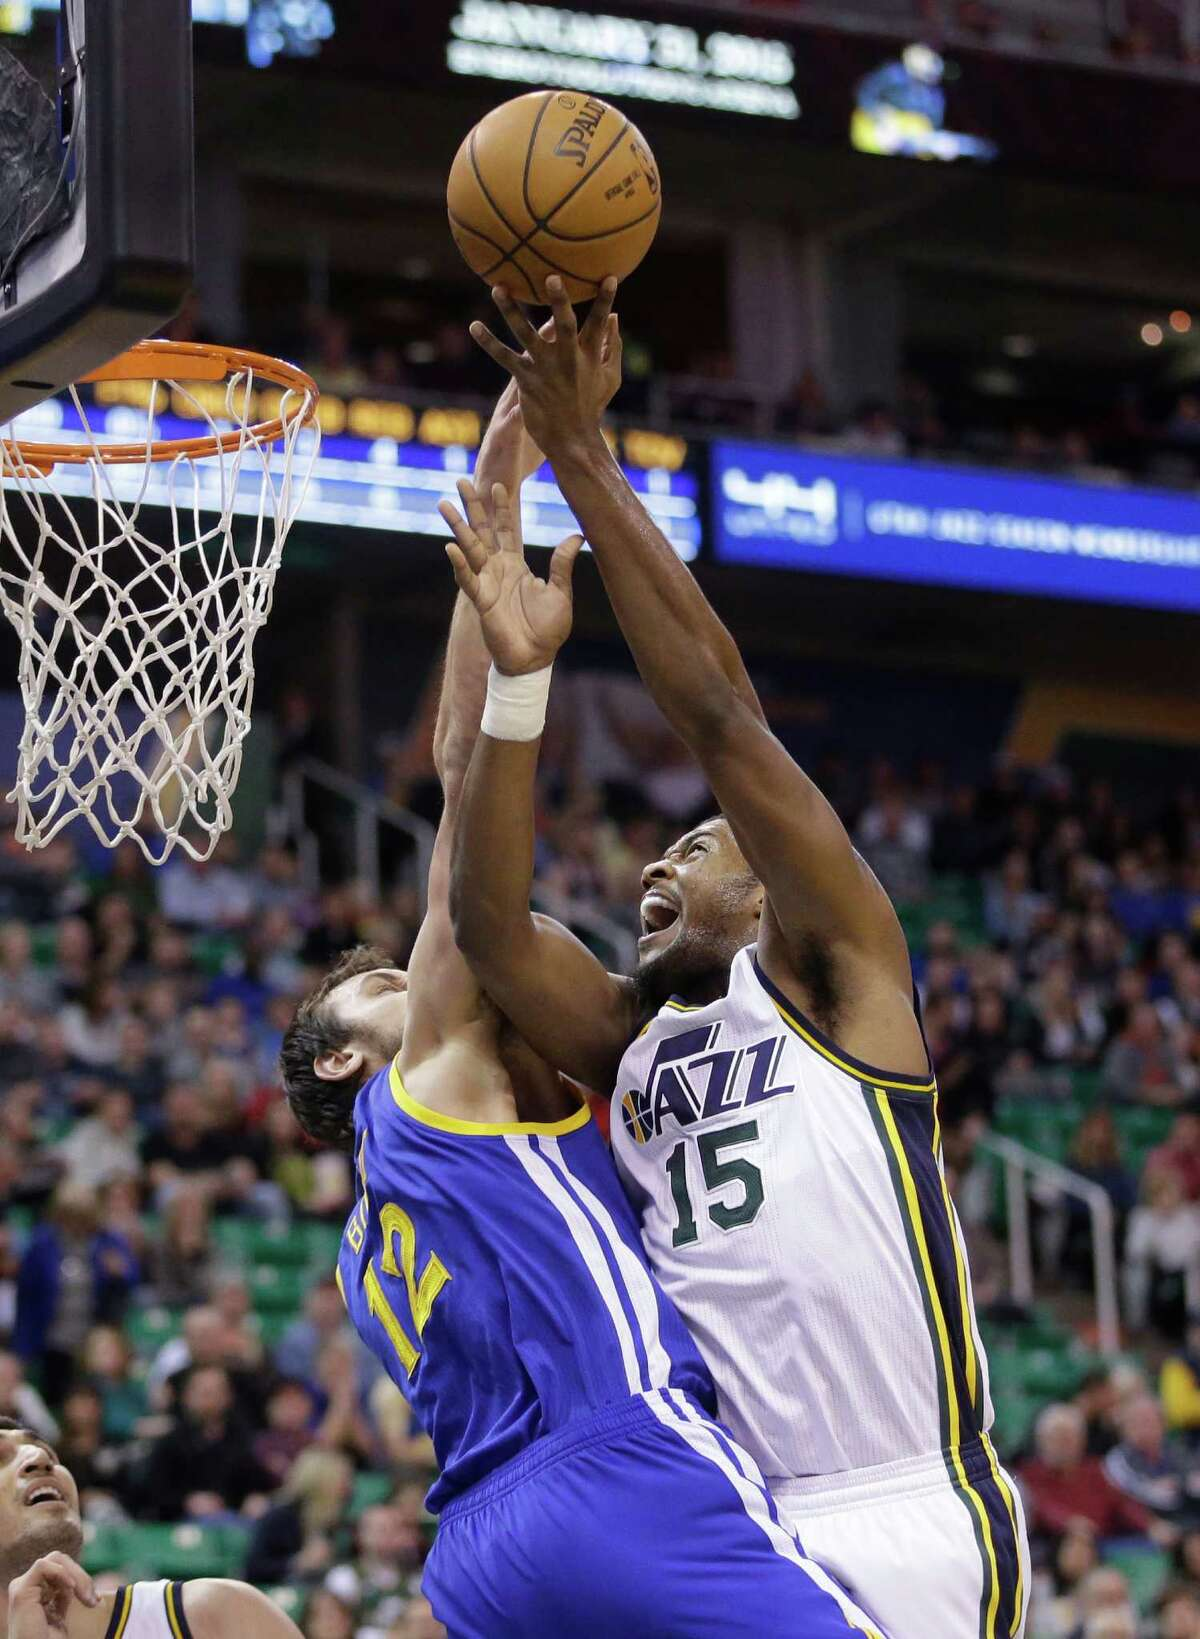 Utah Jazz forward Derrick Favors (15) is fouled by Golden State Warriors center Andrew Bogut (12) in the first quarter during an NBA basketball Tuesday, Jan. 13, 2015, in Salt Lake City. (AP Photo/Rick Bowmer)